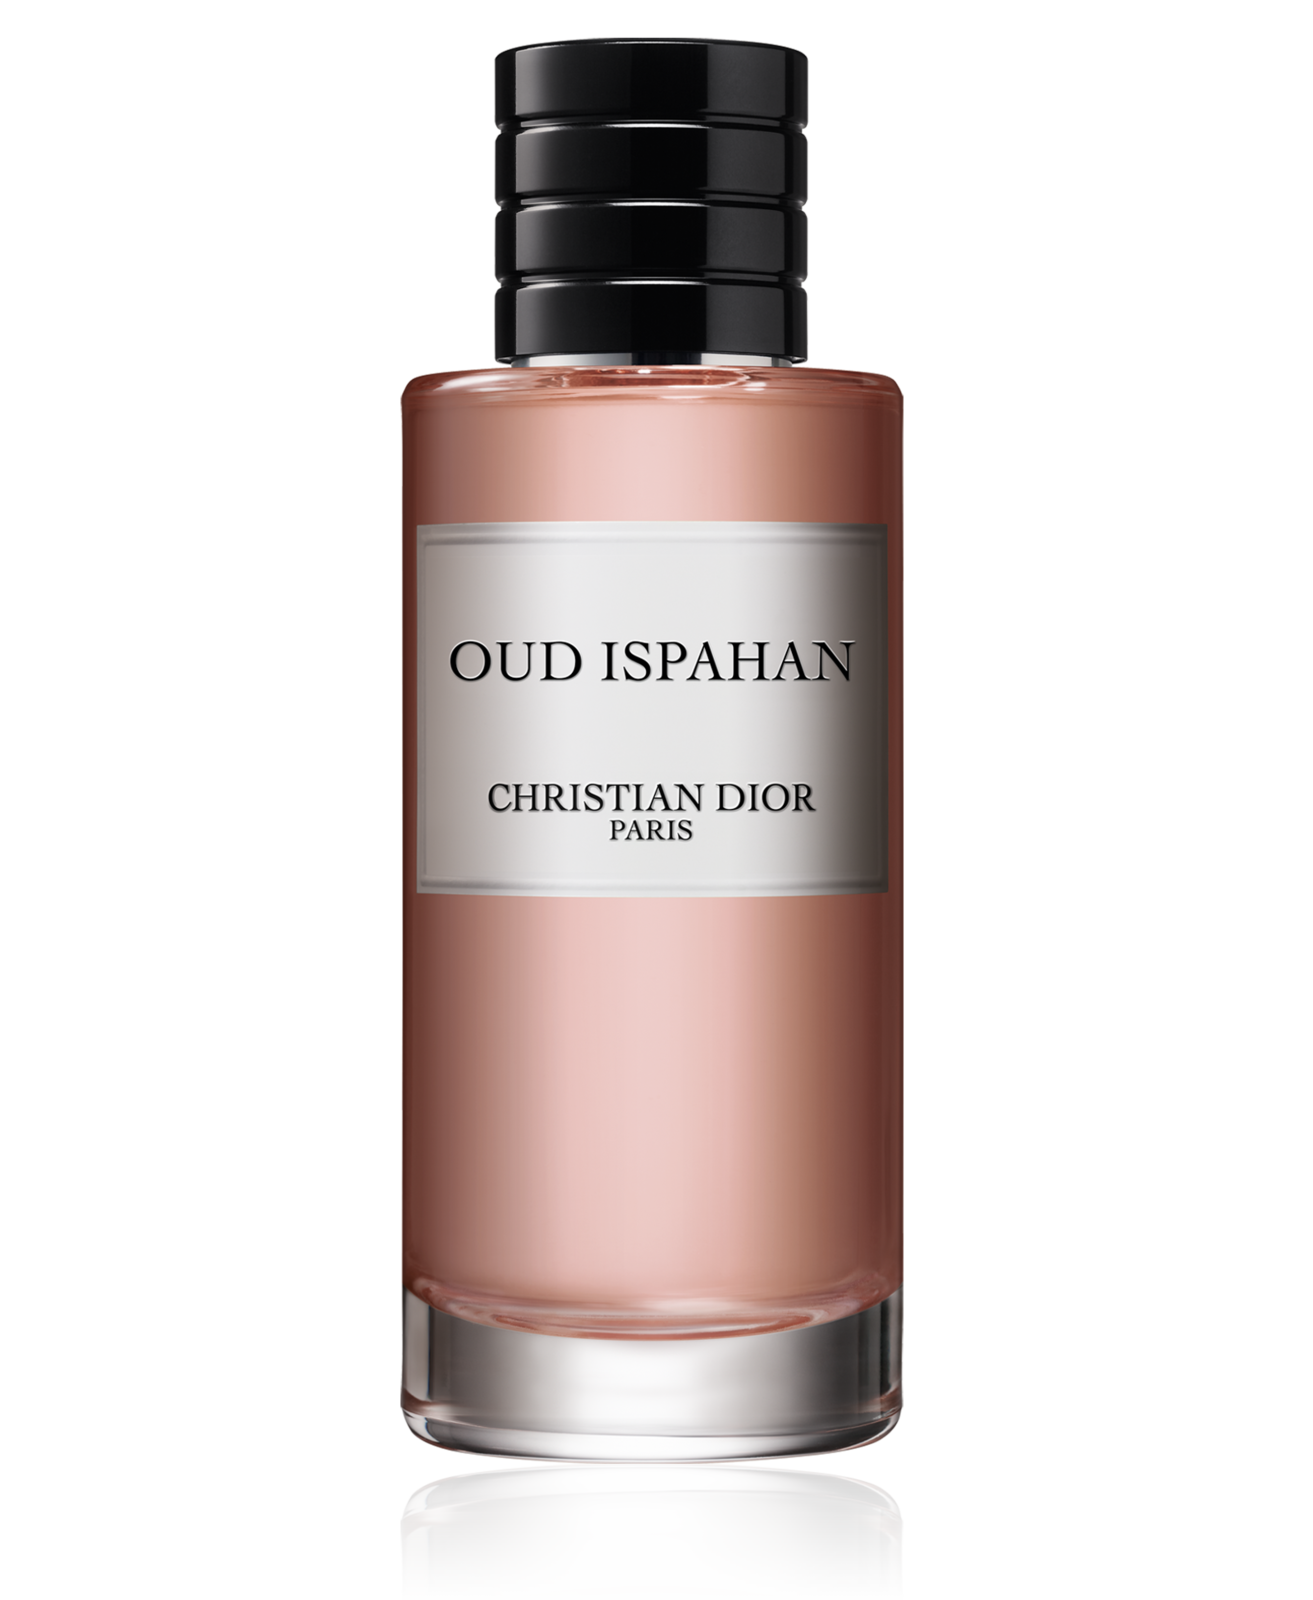 OUD ISPAHAN by DIOR 5ml Travel Spray LABDANUM ROSE AOUD Perfume Christian